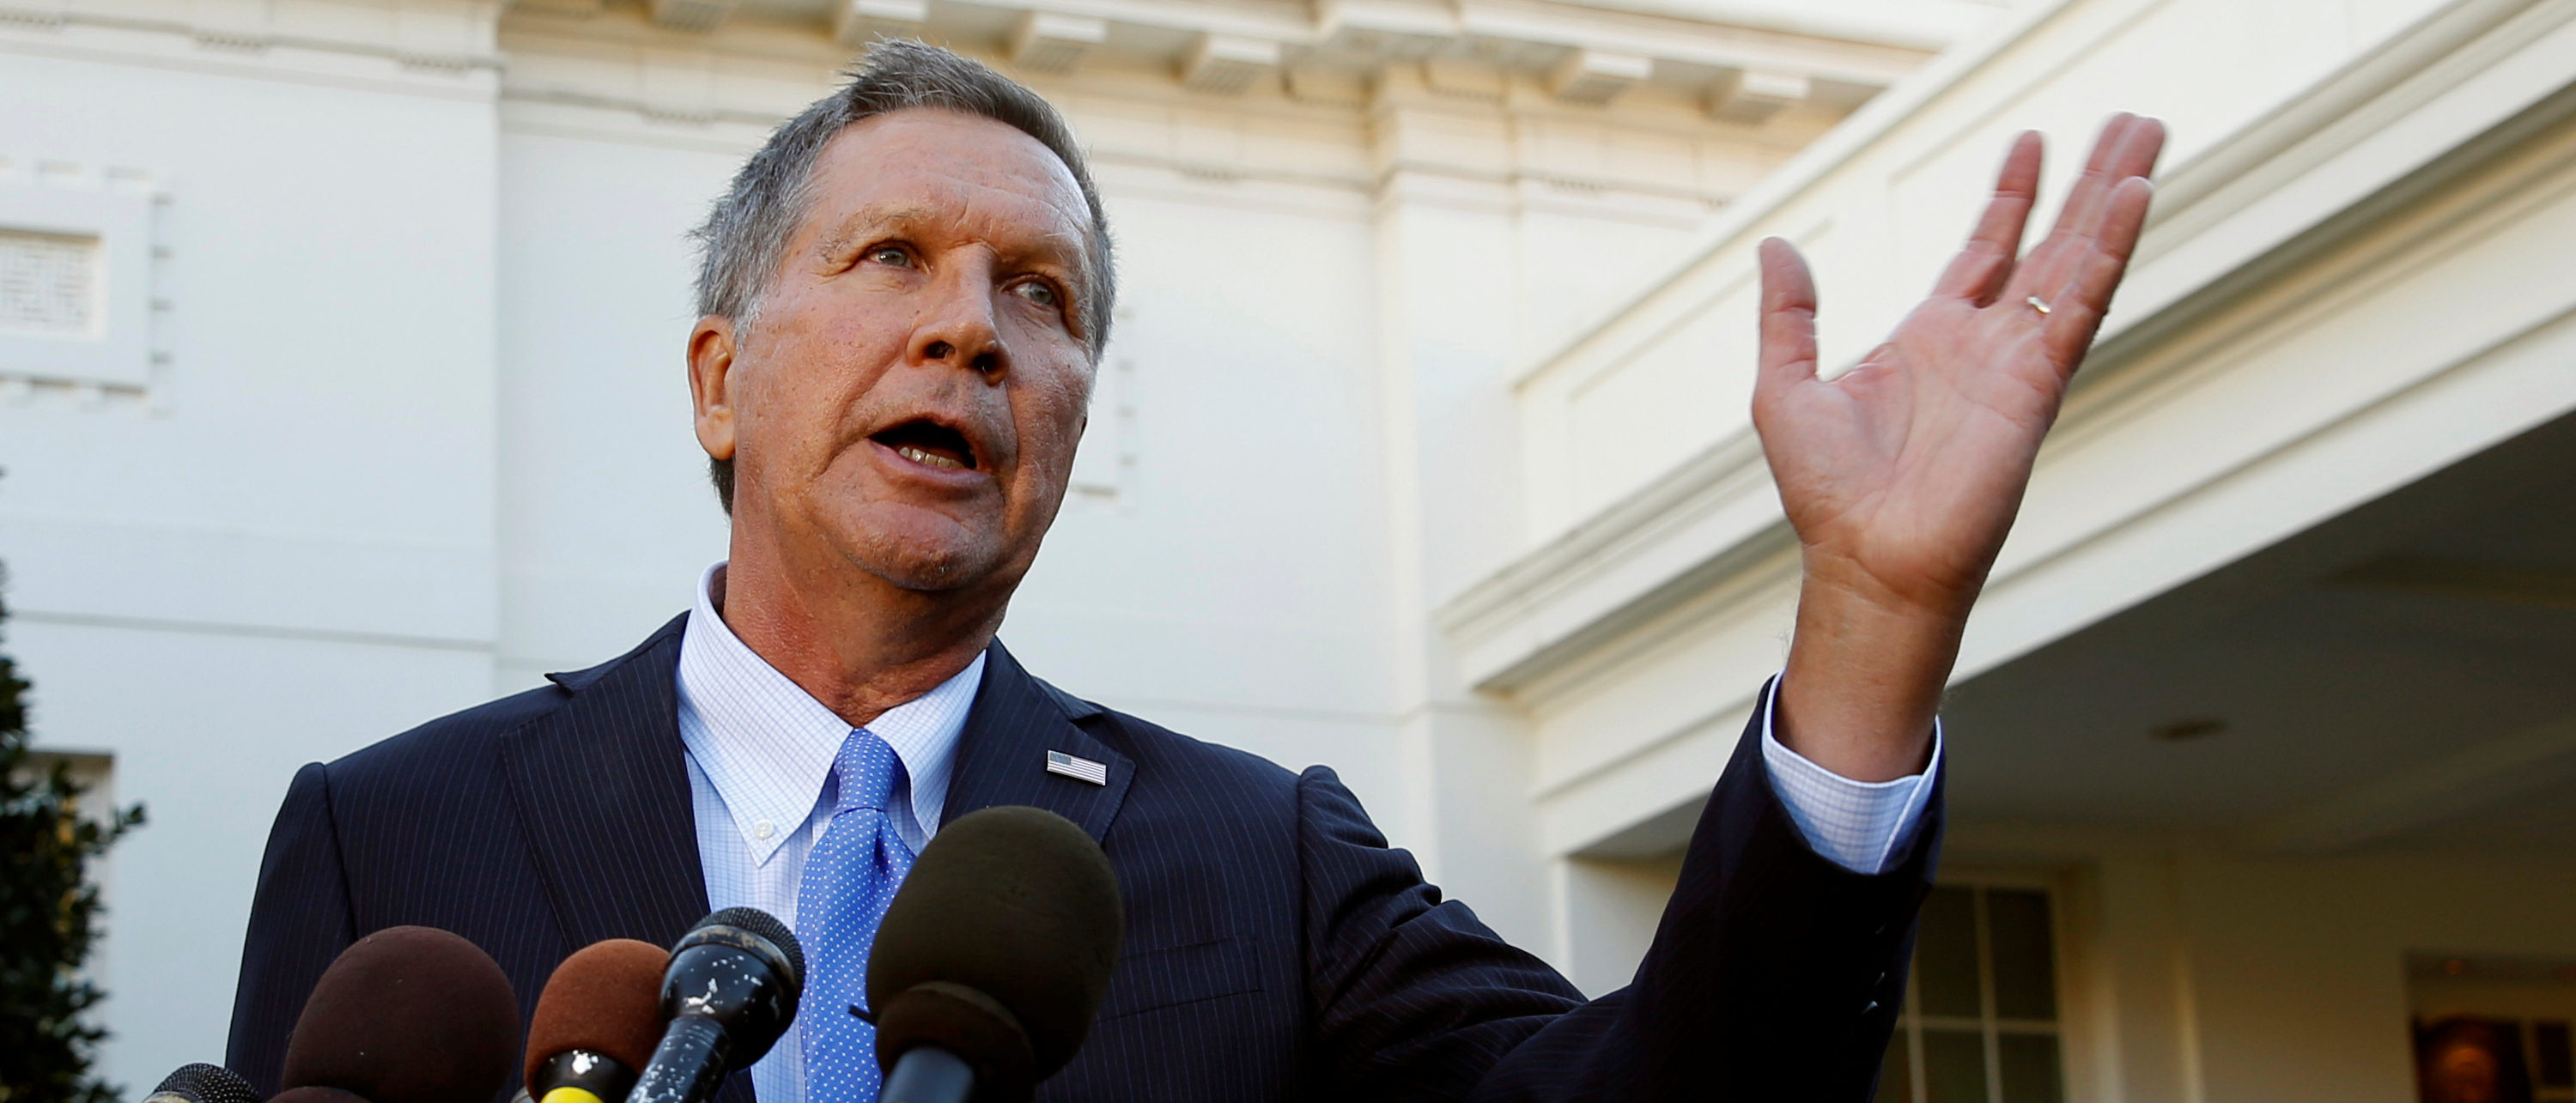 Ohio Governor and former presidential candidate John Kasich speaks to reporters after an event honoring the Cleveland Cavaliers, the 2016 NBA championship team, at the White House in Washington November 10, 2016. REUTERS/Kevin Lamarque.